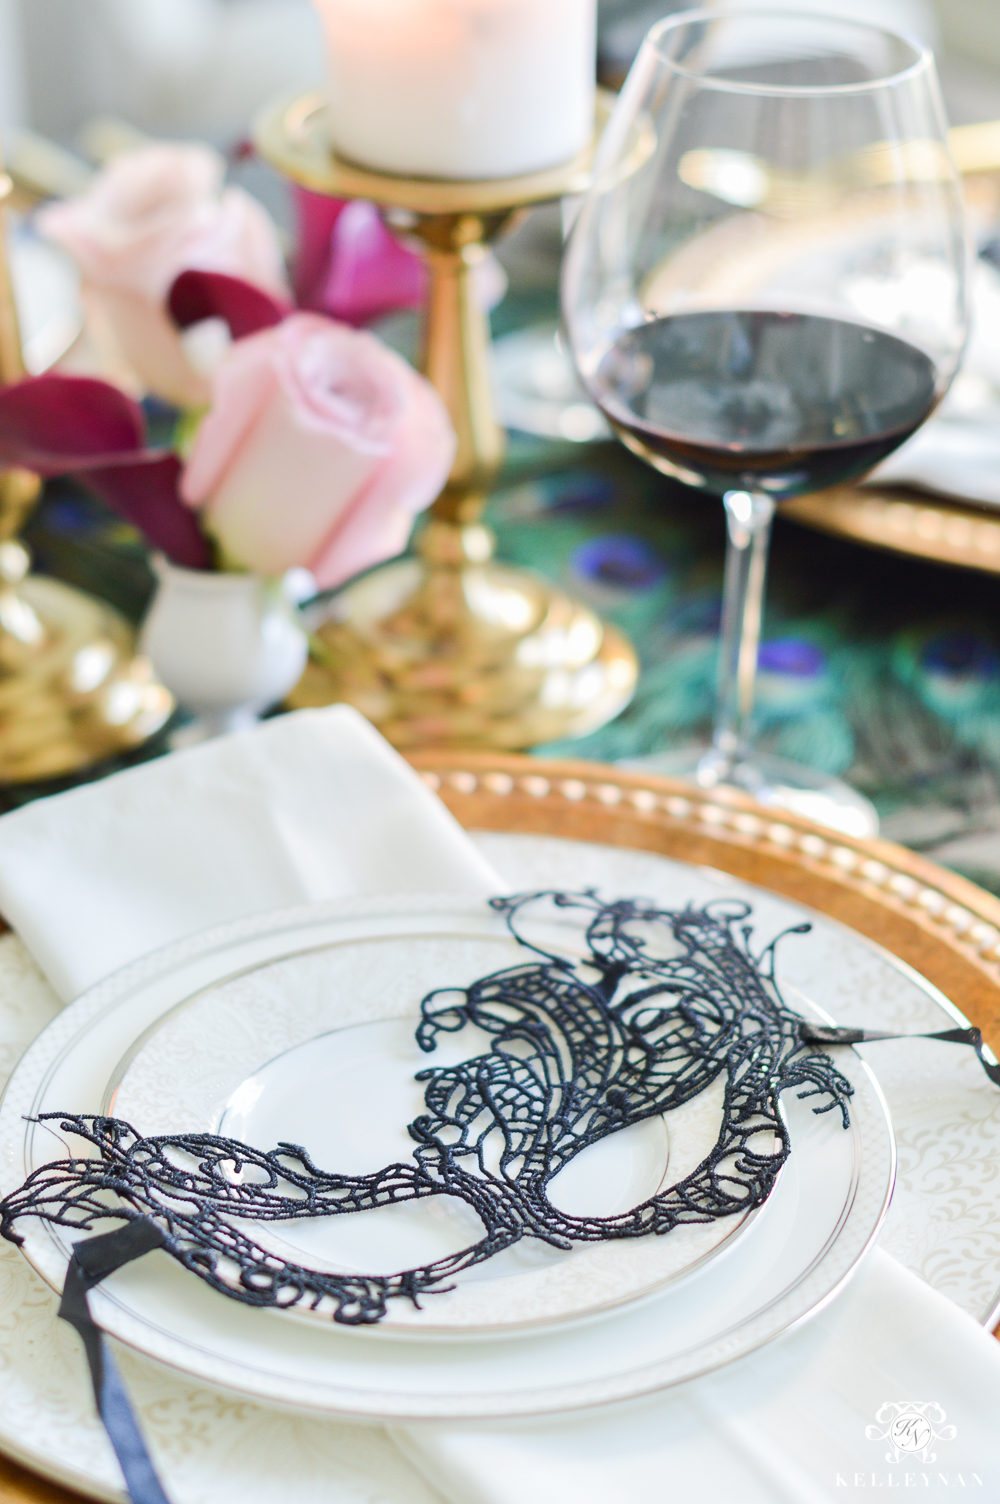 Masquerade Dinner Party for Halloween with Full Table Setting_-mask at place setting